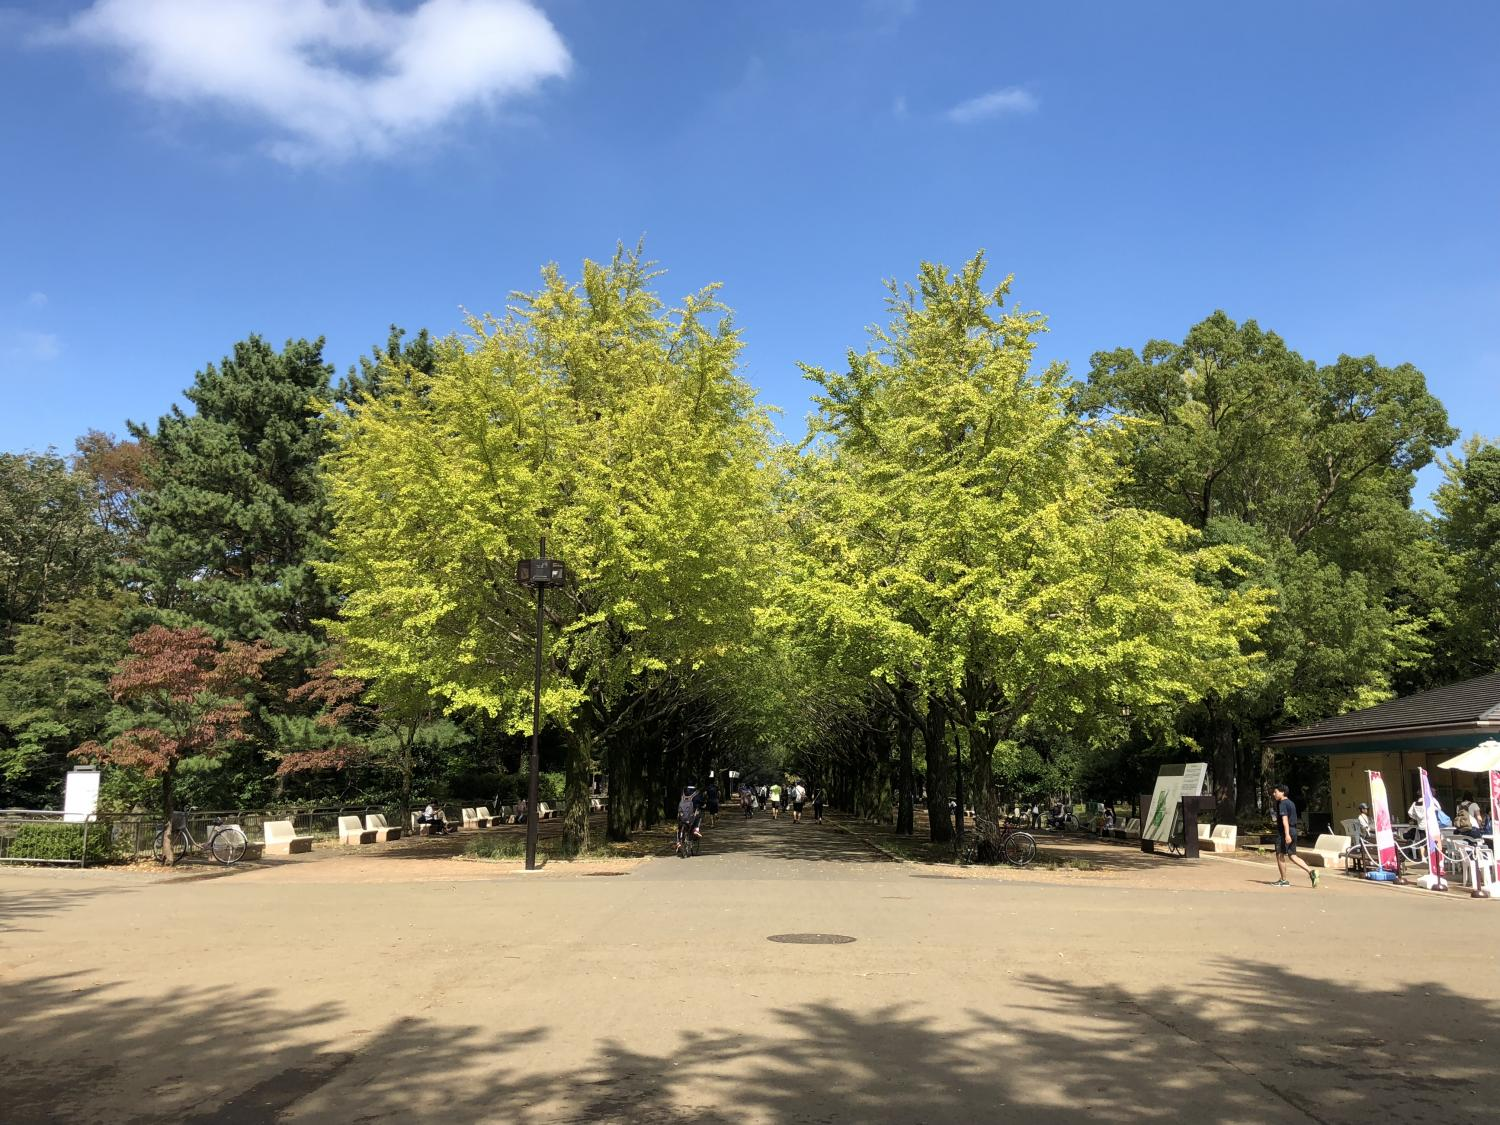 Ginkgo row of trees image which changes color